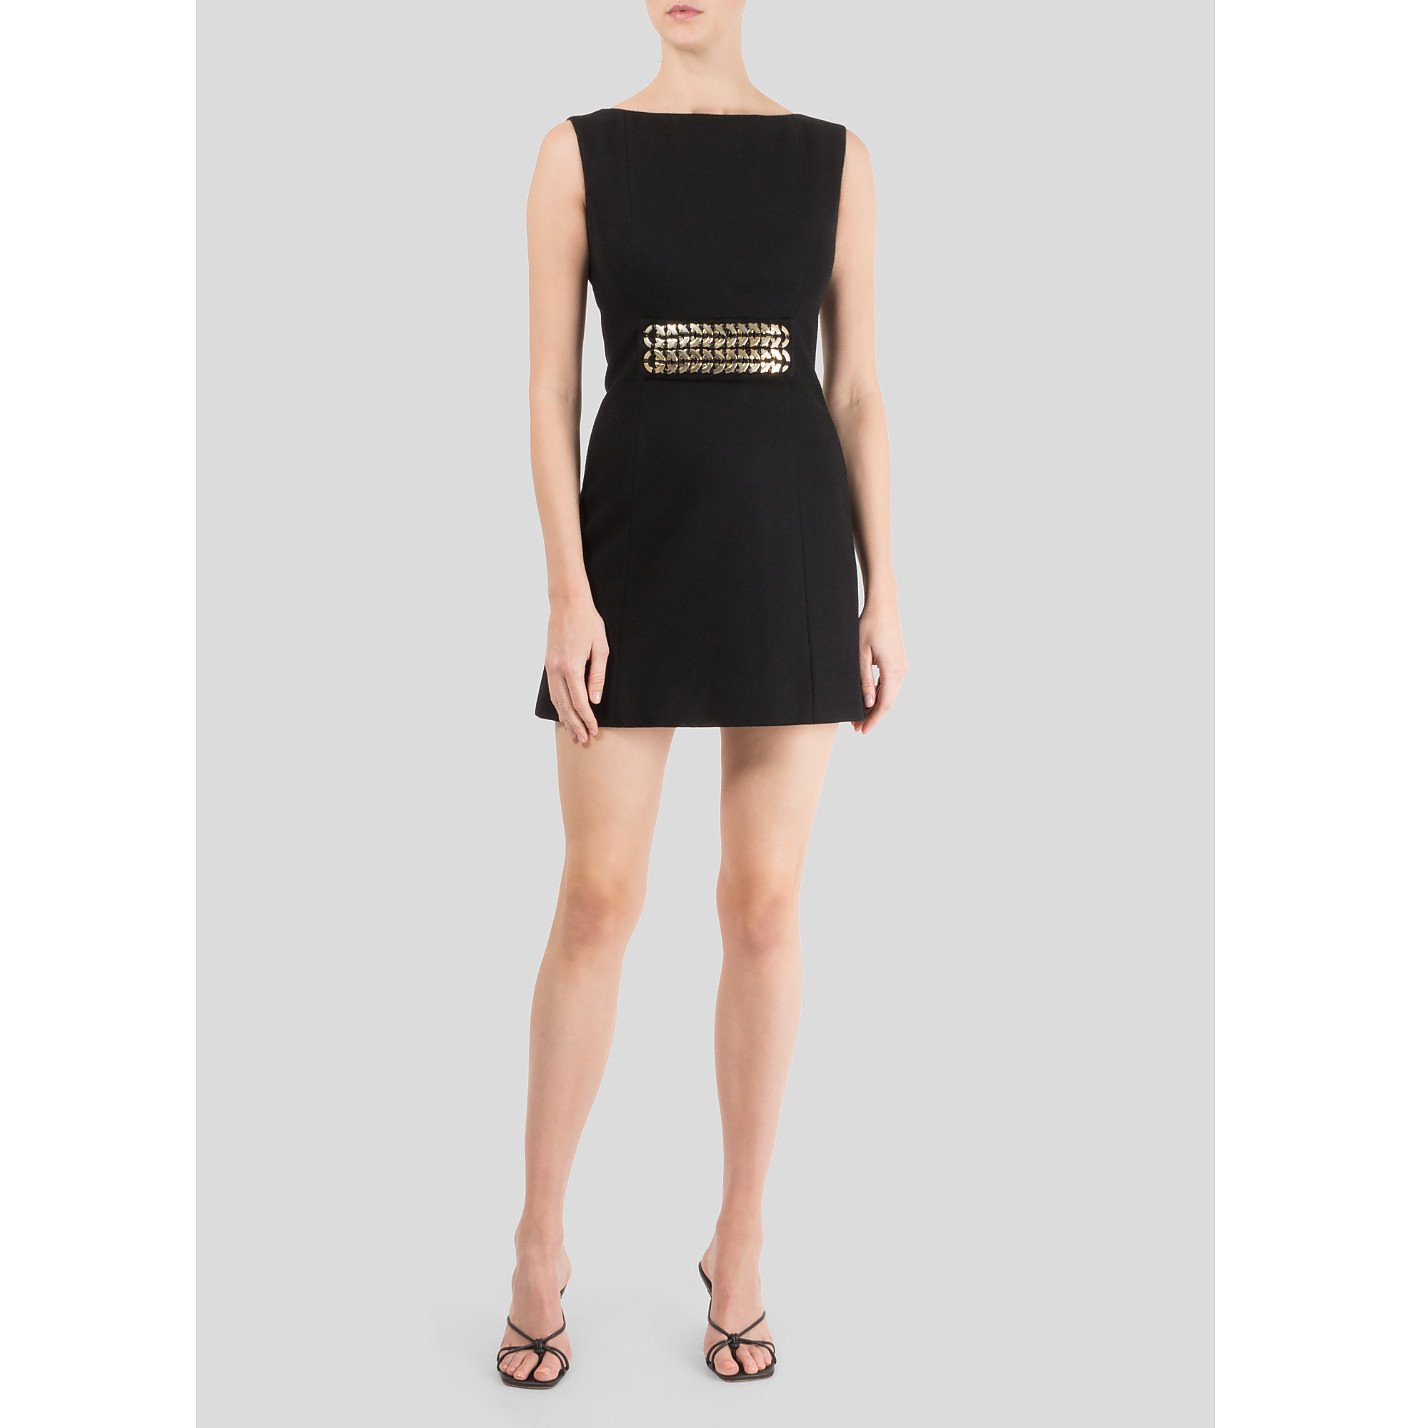 Victoria Beckham Wool Mini Dress With Metal Belt Detail